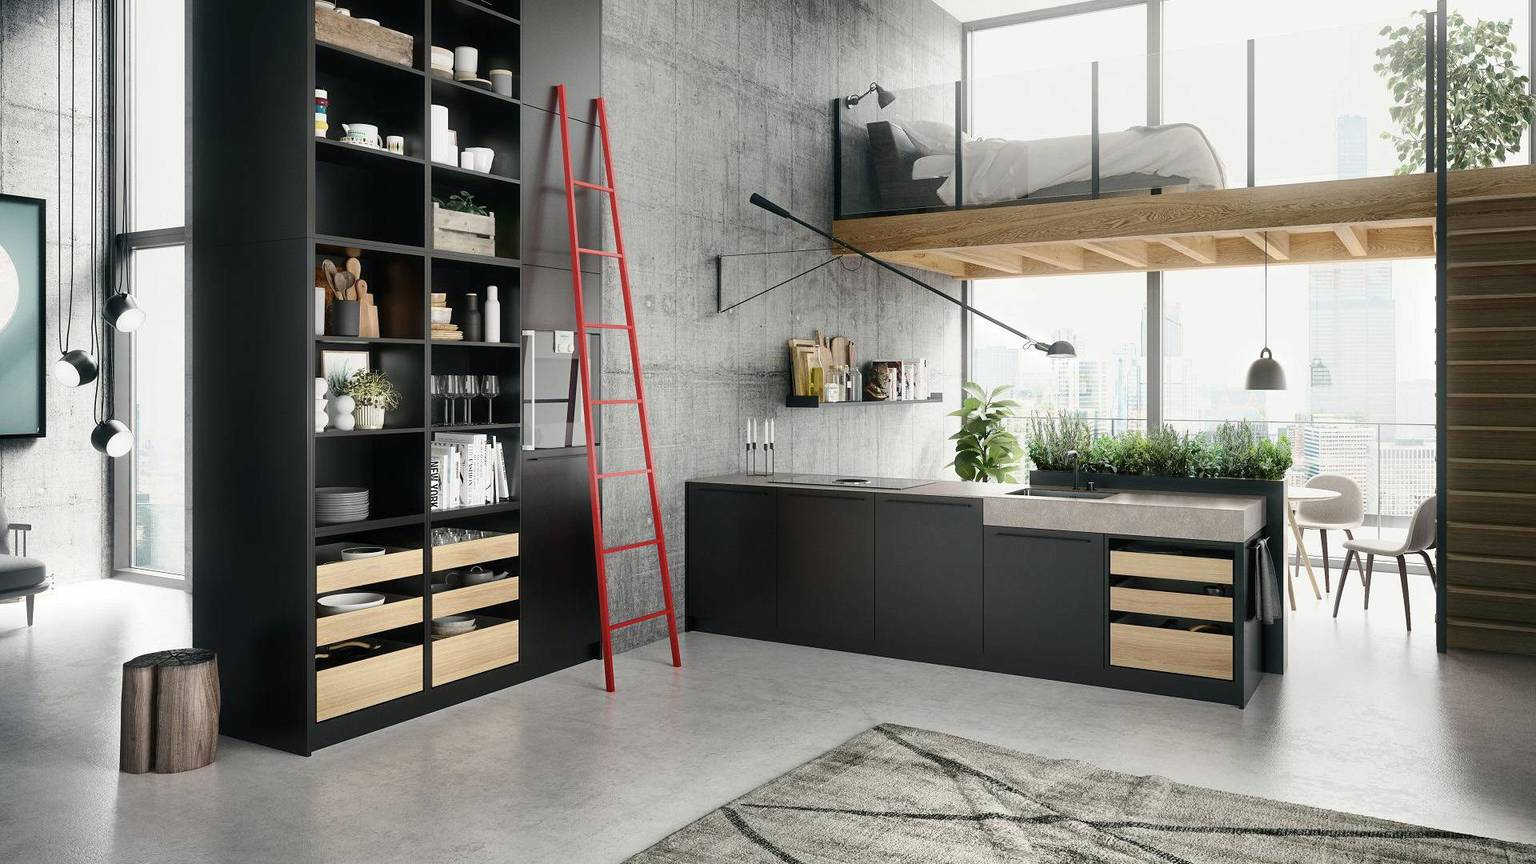 SieMatic Urban SE kitchen in graphite grey with floor-to-ceiling shelving, island and herb garden